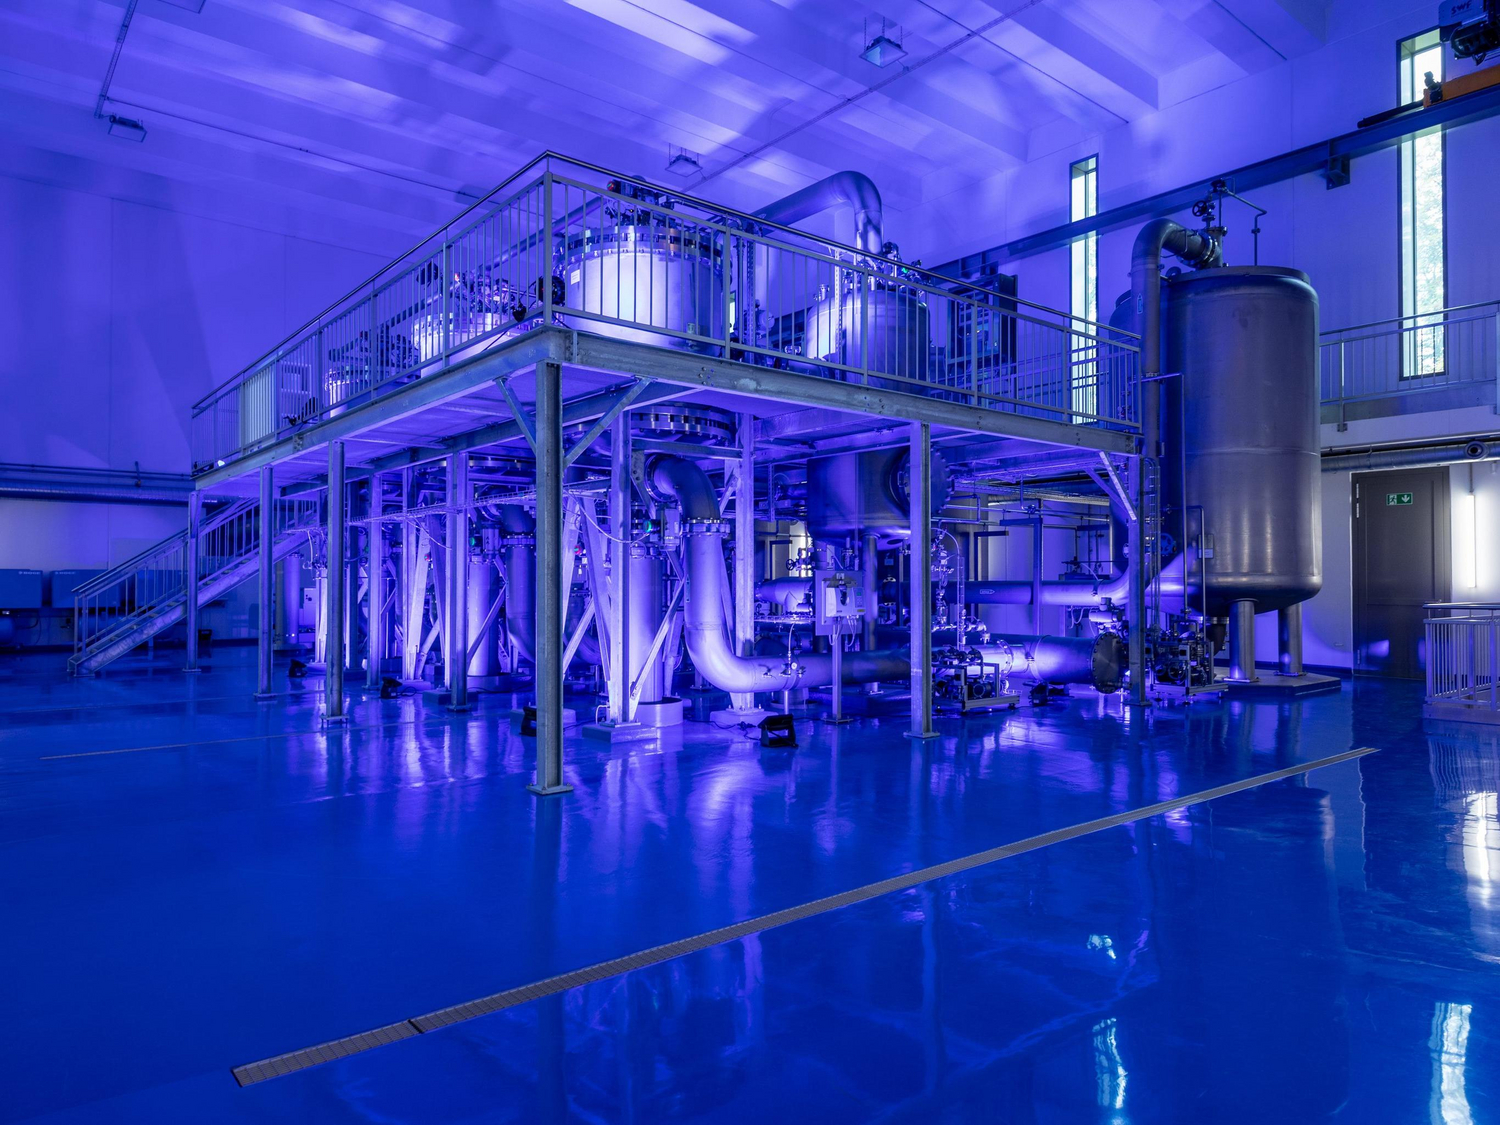 Switzerland's First CeraMac® Water Treatment Plant Operational